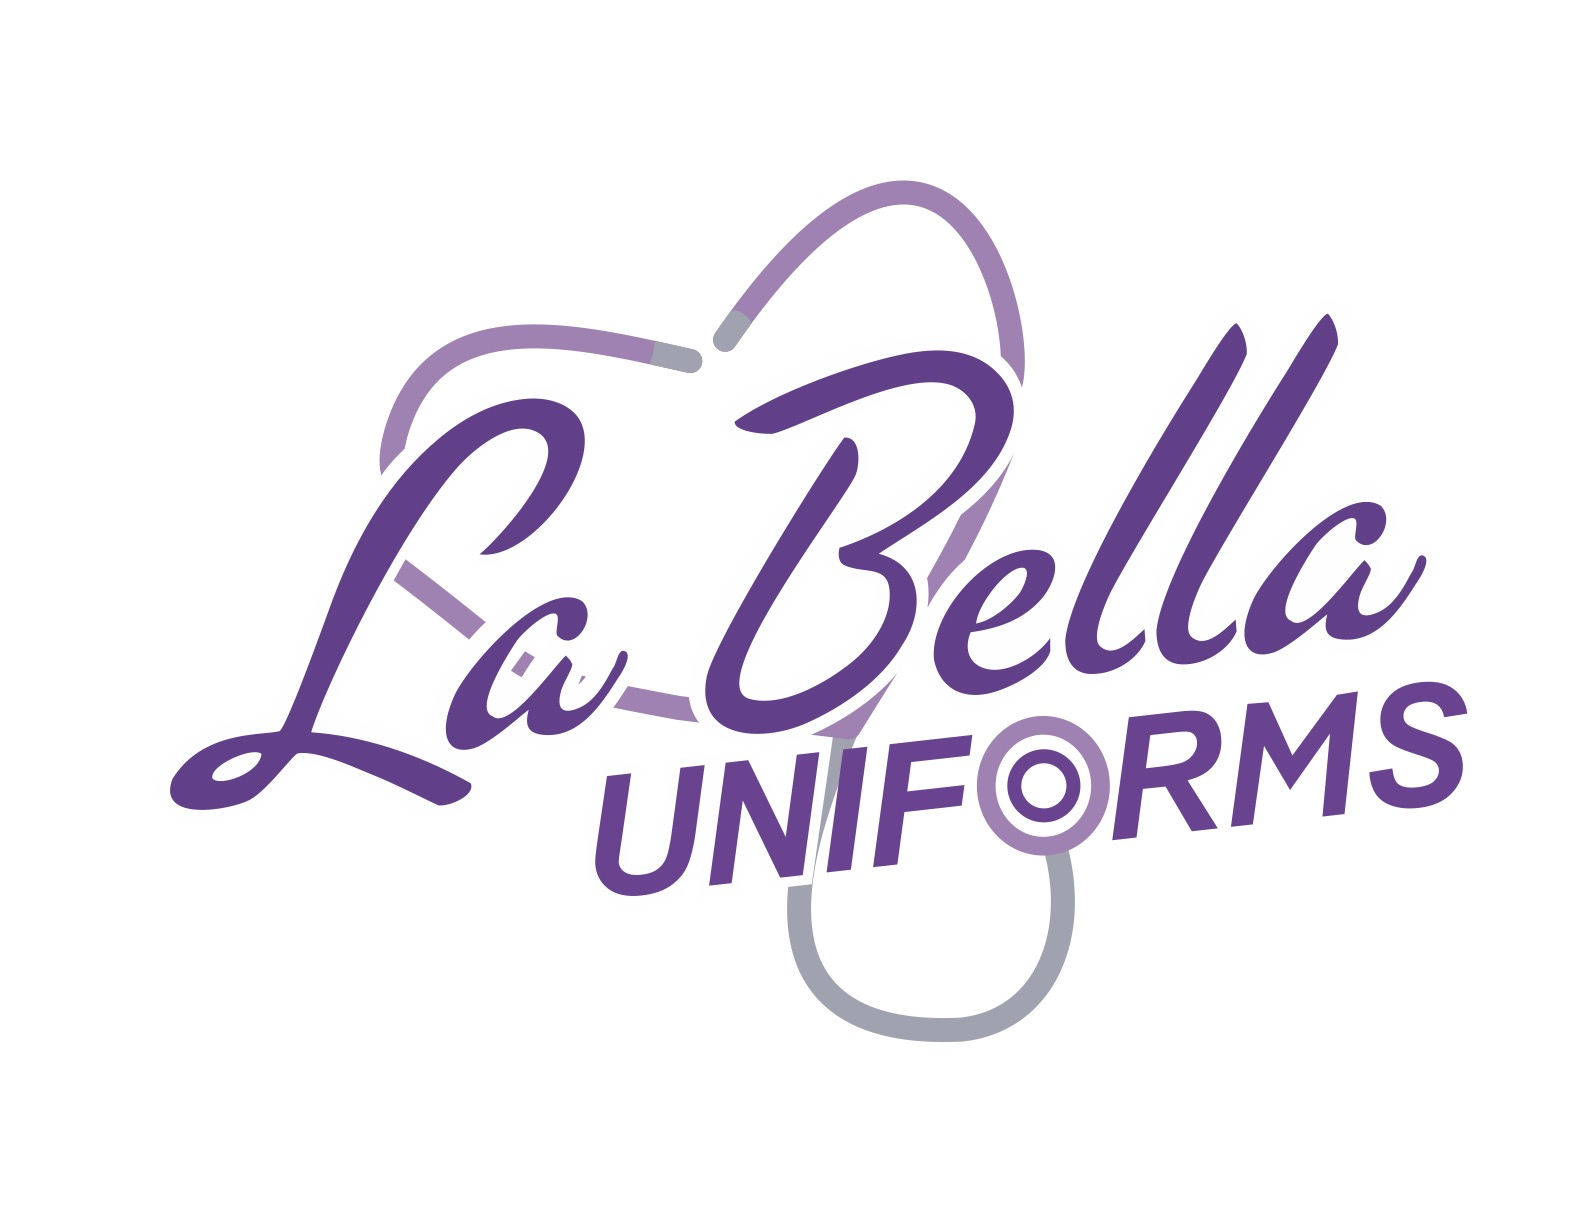 La Bella Uniforms Logo www.labellauniforms.com.jpg